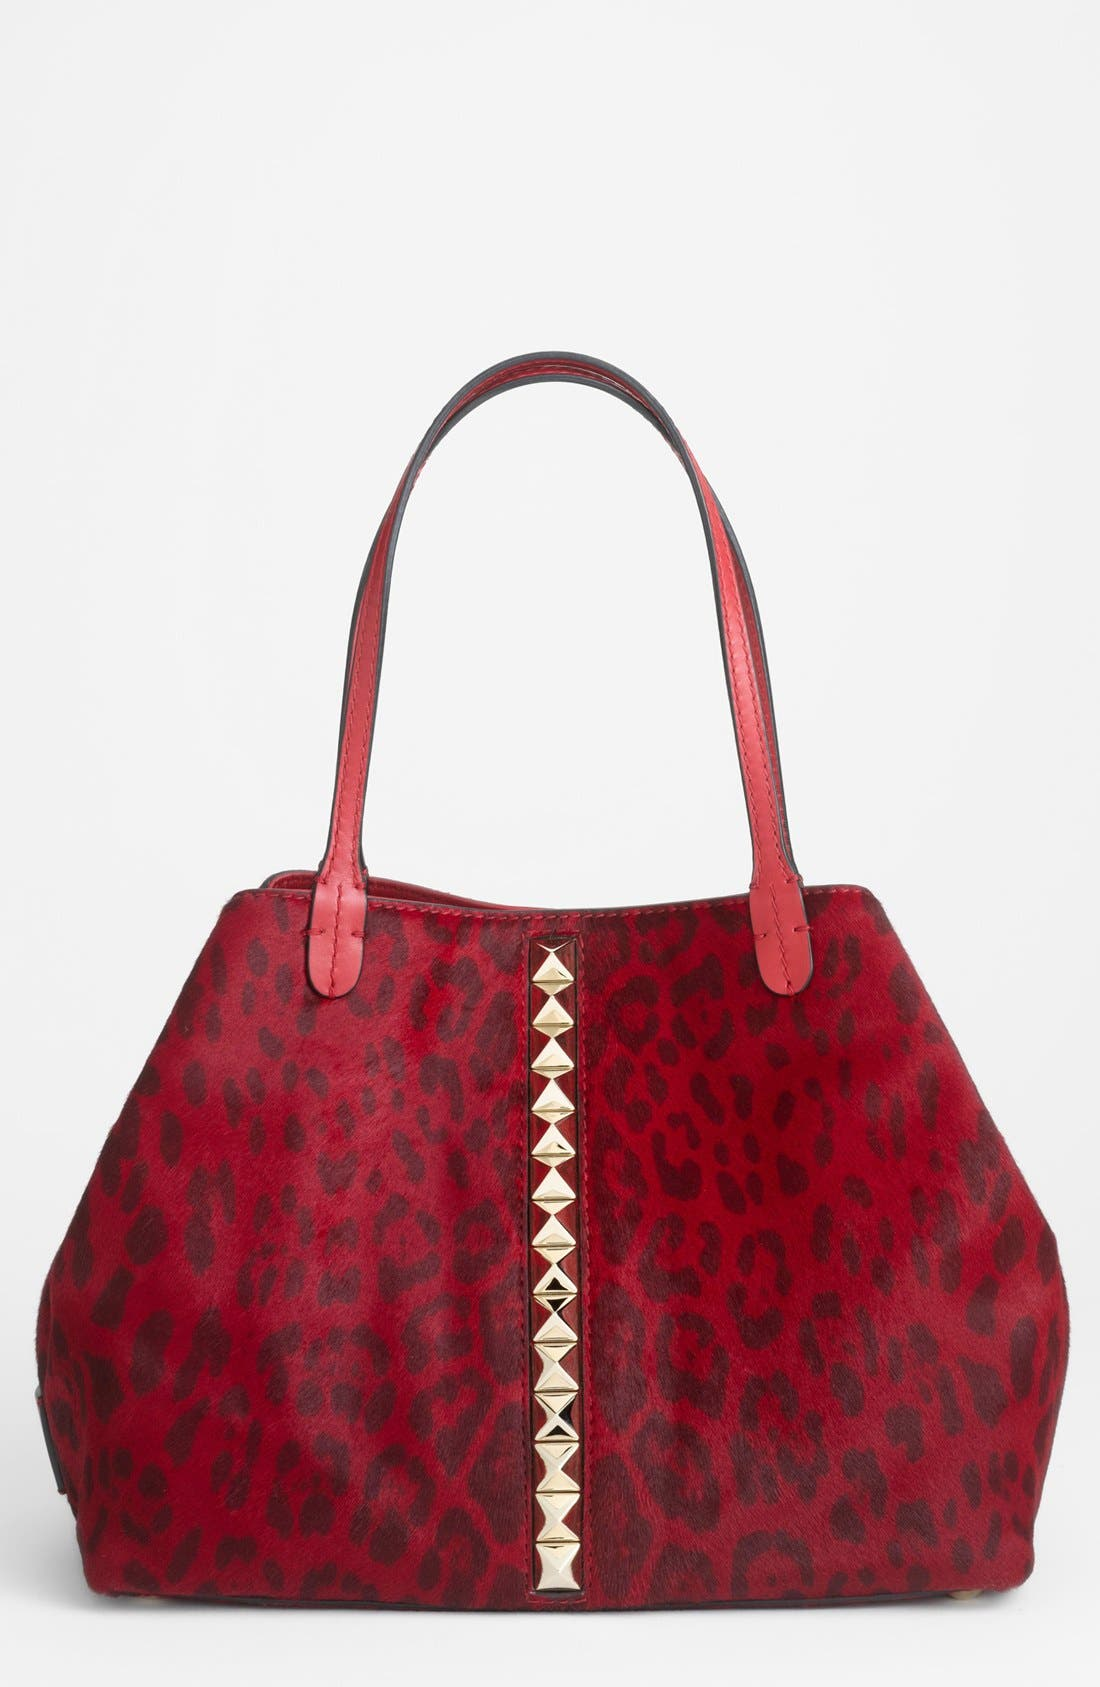 Alternate Image 1 Selected - Valentino 'Cavallino - Medium' Calf Hair Tote